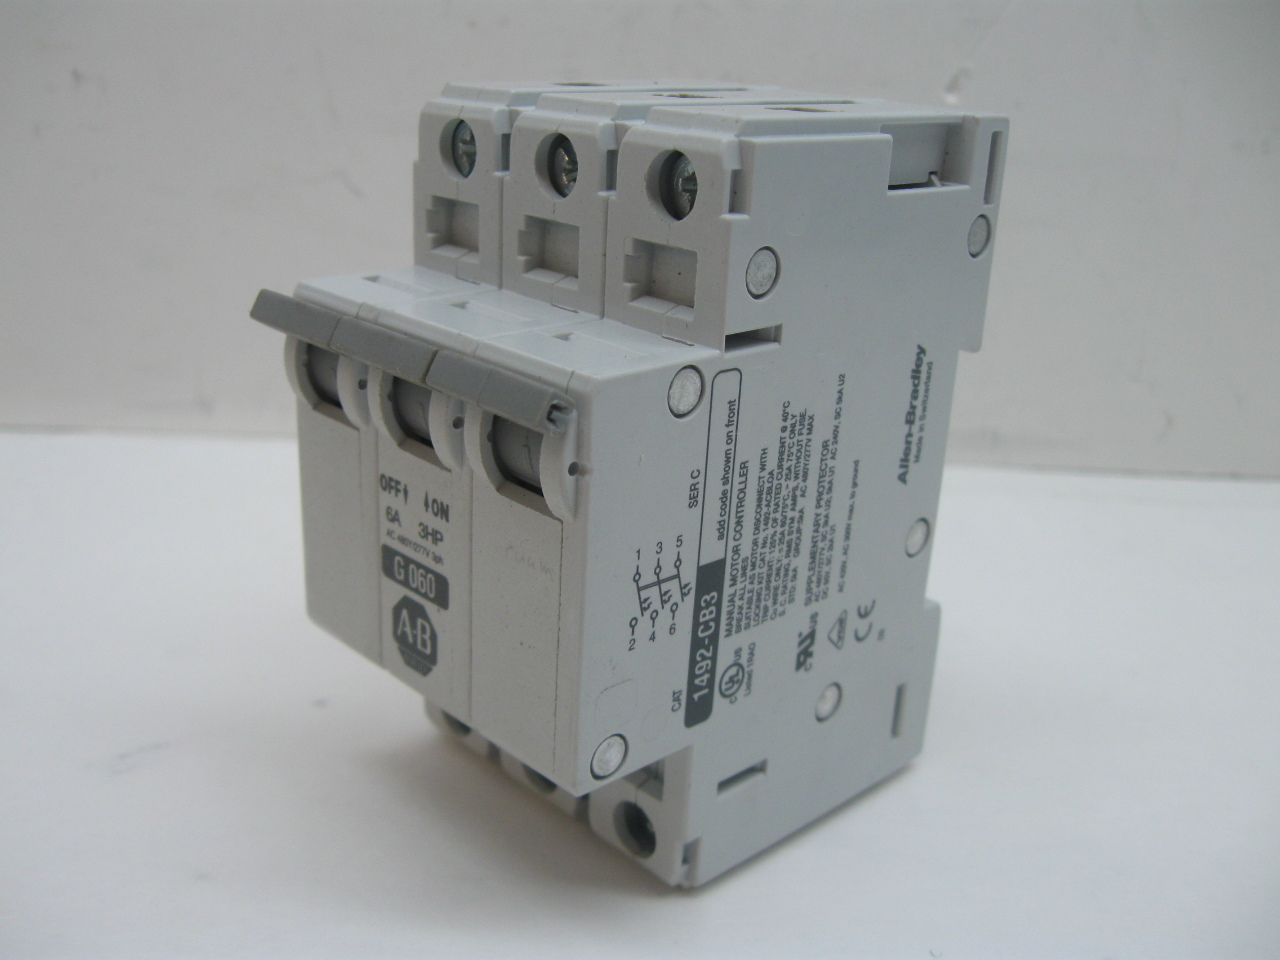 6 Amp Circuit Breaker Best Secret Wiring Diagram Breakers Stud Mount Auto Reset Automotive Allen Bradley 1492 Cb3g060 3 Pole 12v